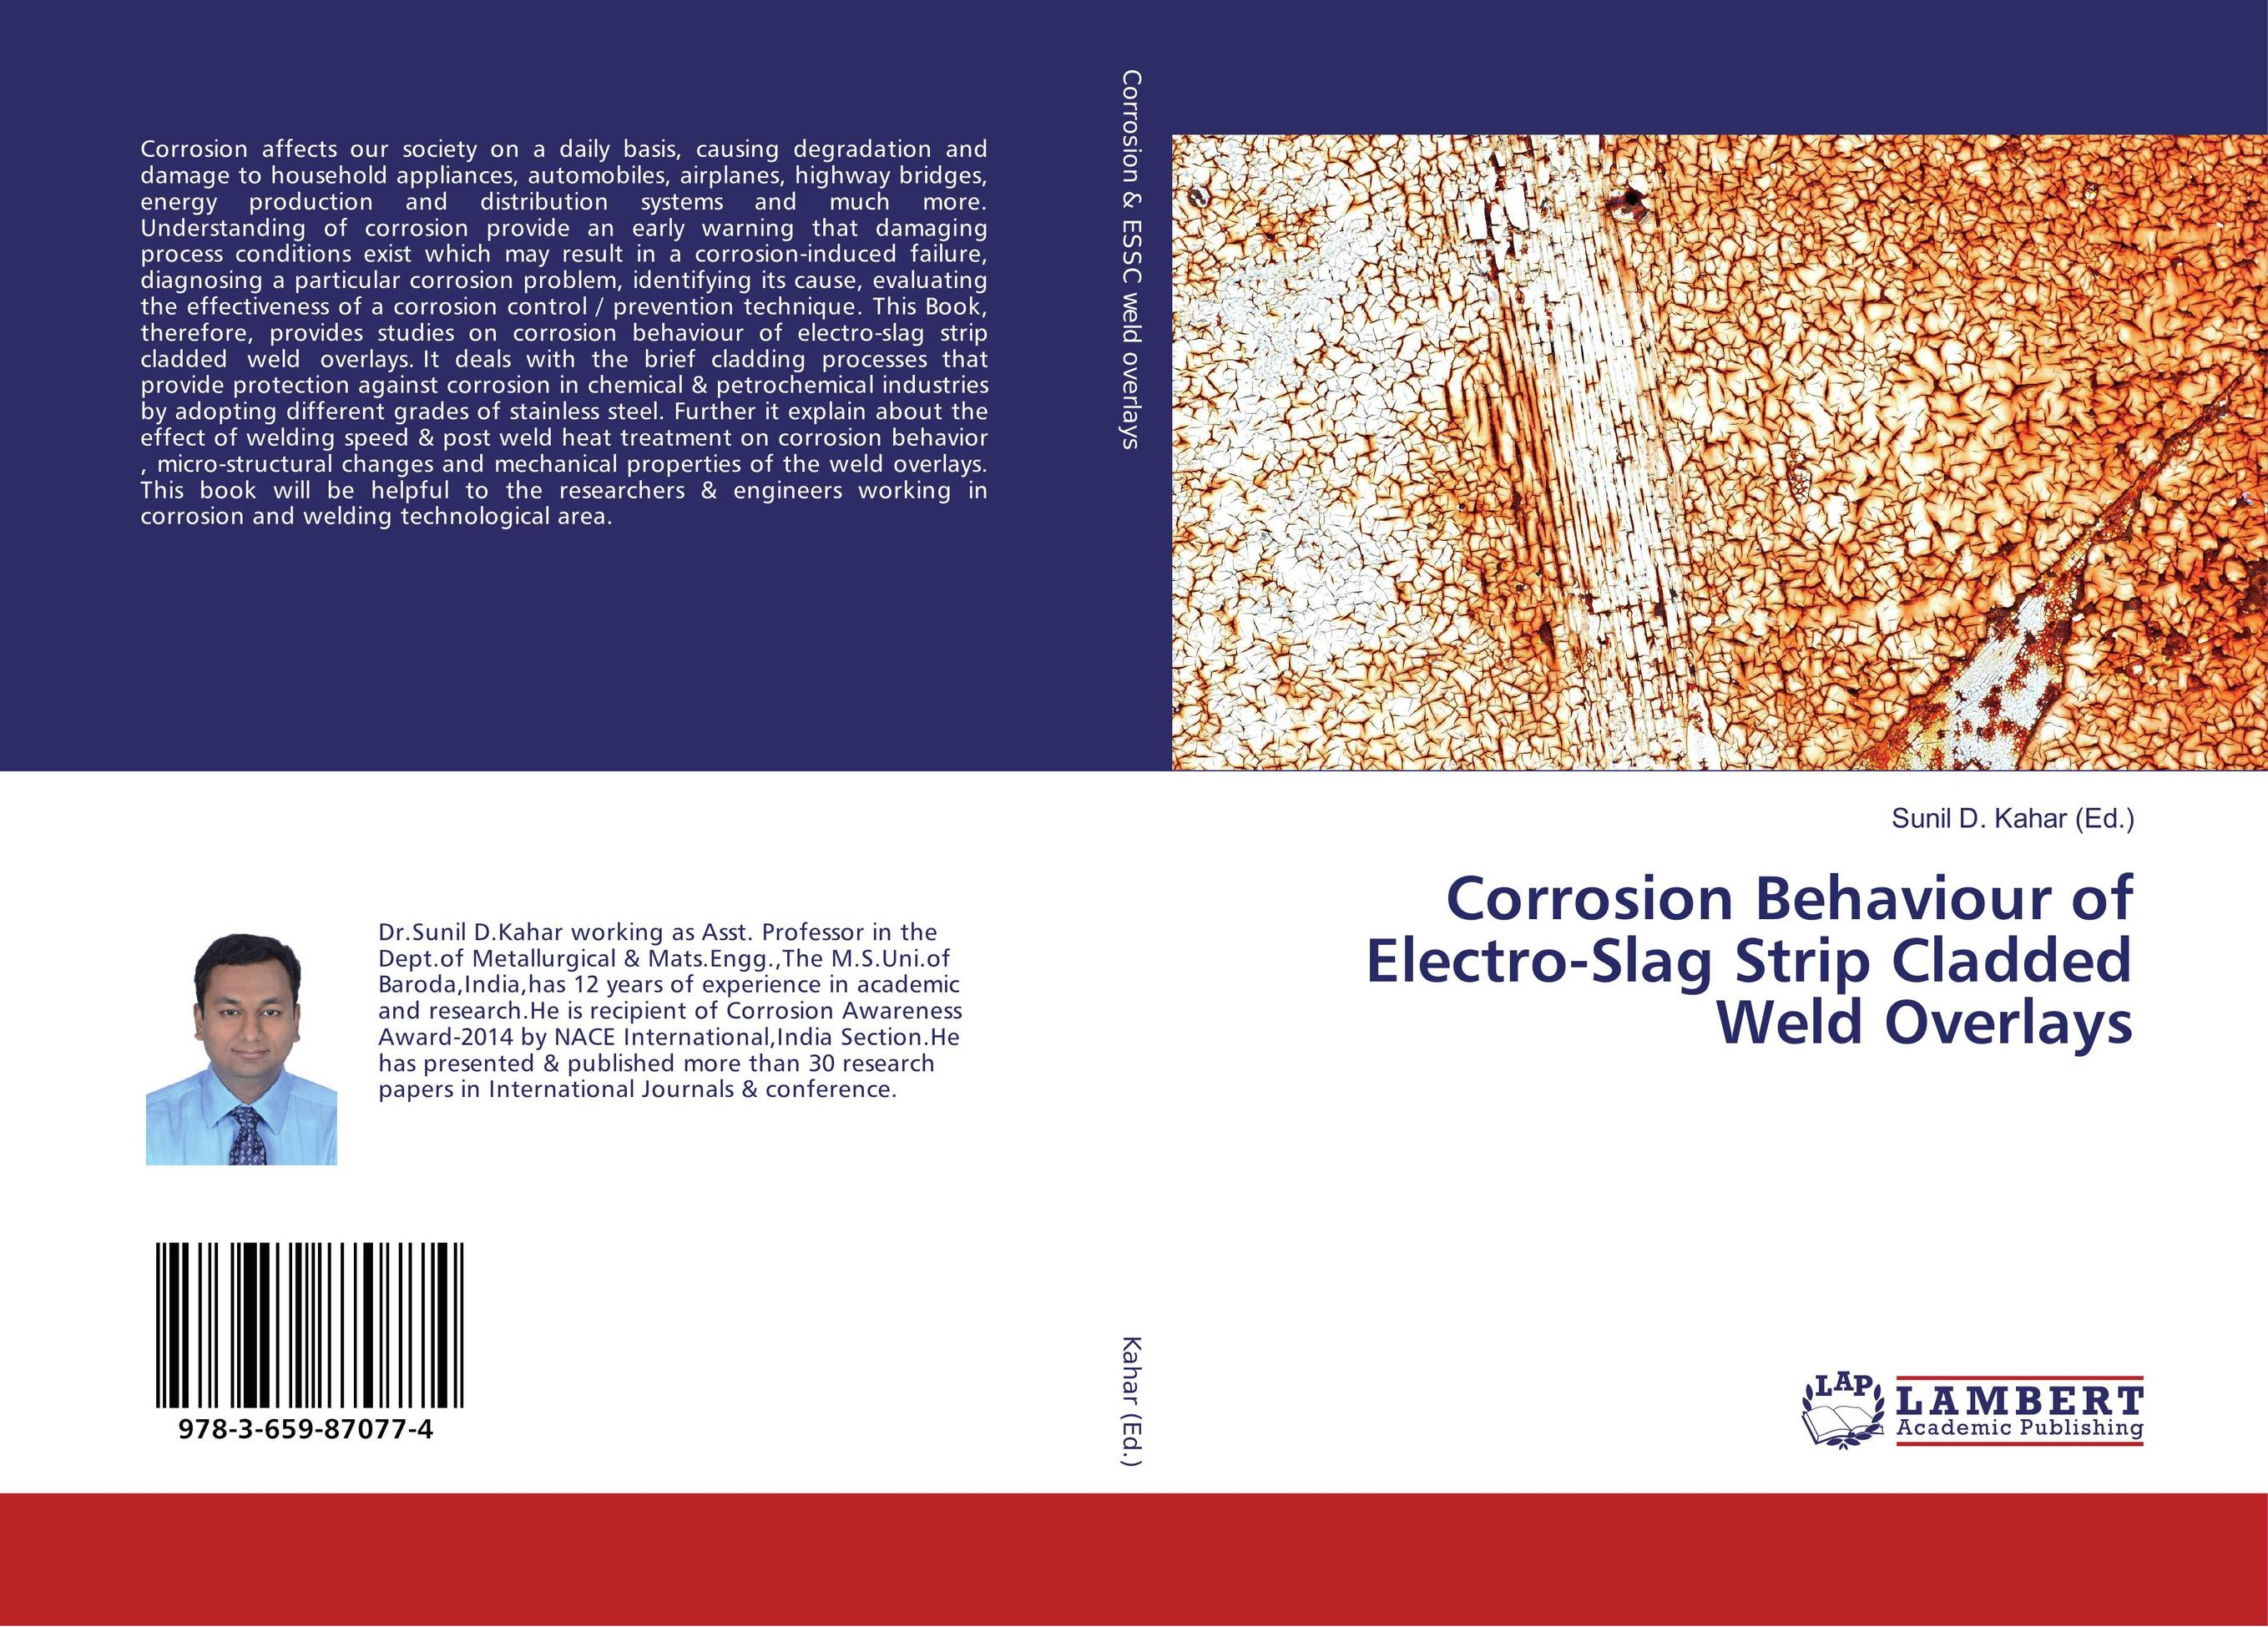 Corrosion Behaviour of Electro-Slag Strip Cladded Weld Overlays